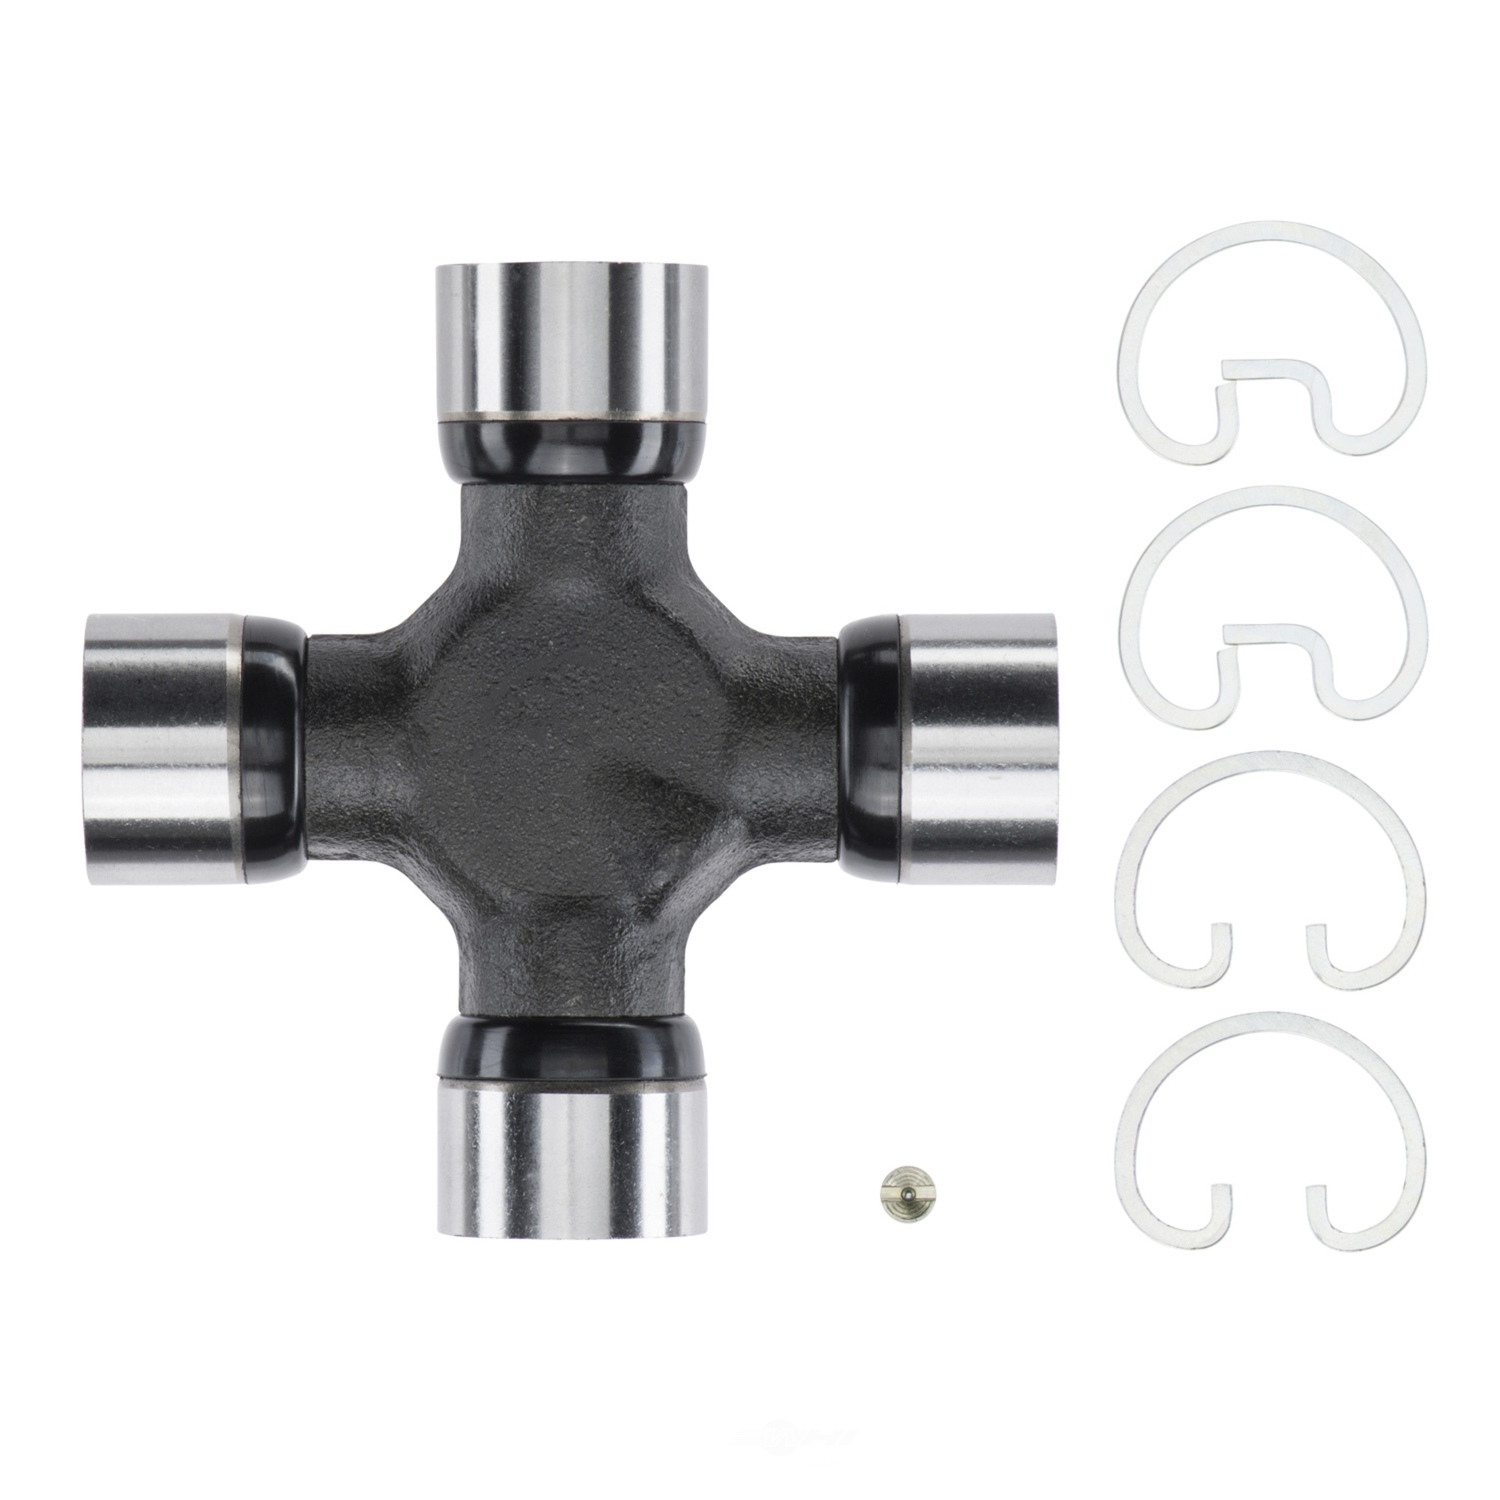 MOOG DRIVELINE PRODUCTS - Universal Joint (Rear Driveshaft at Rear Axle) - MDP 295A